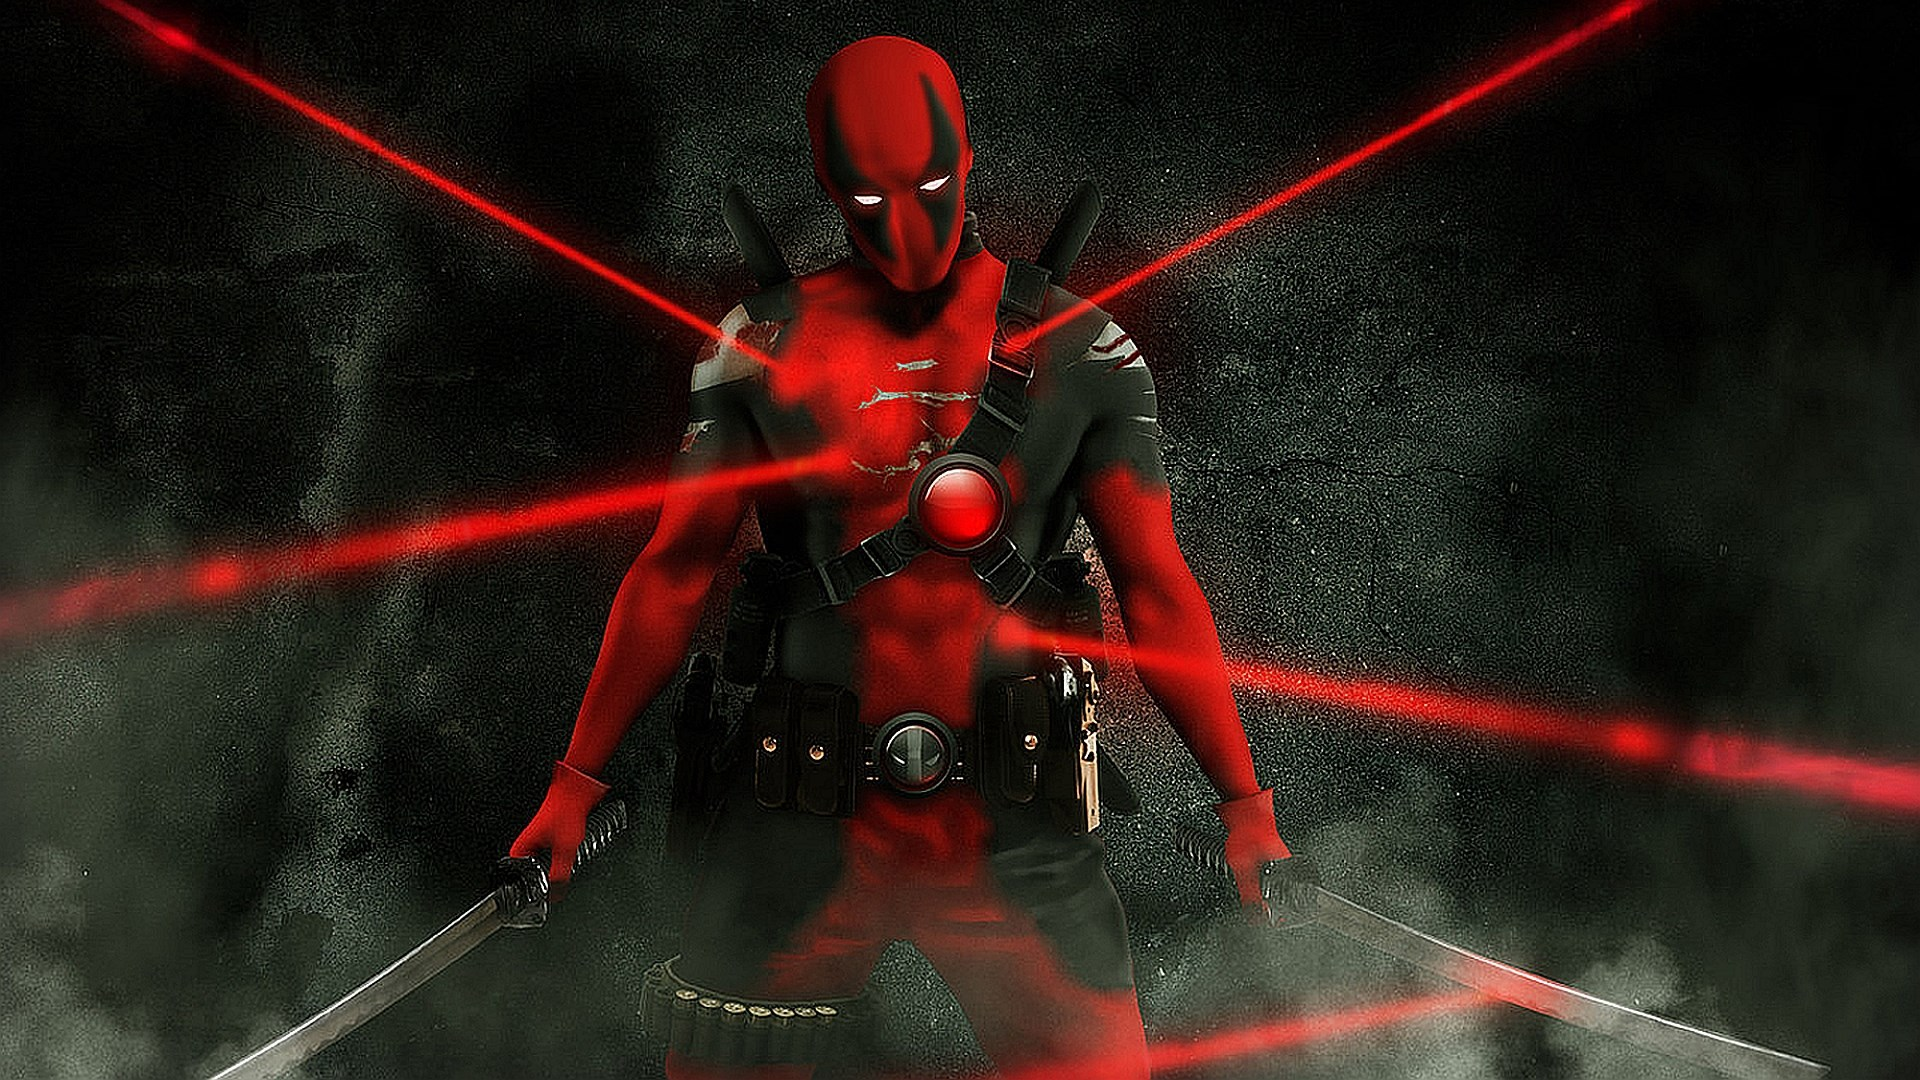 1920x1080-free-screensaver-for-deadpool-wallpaper-wpc900745